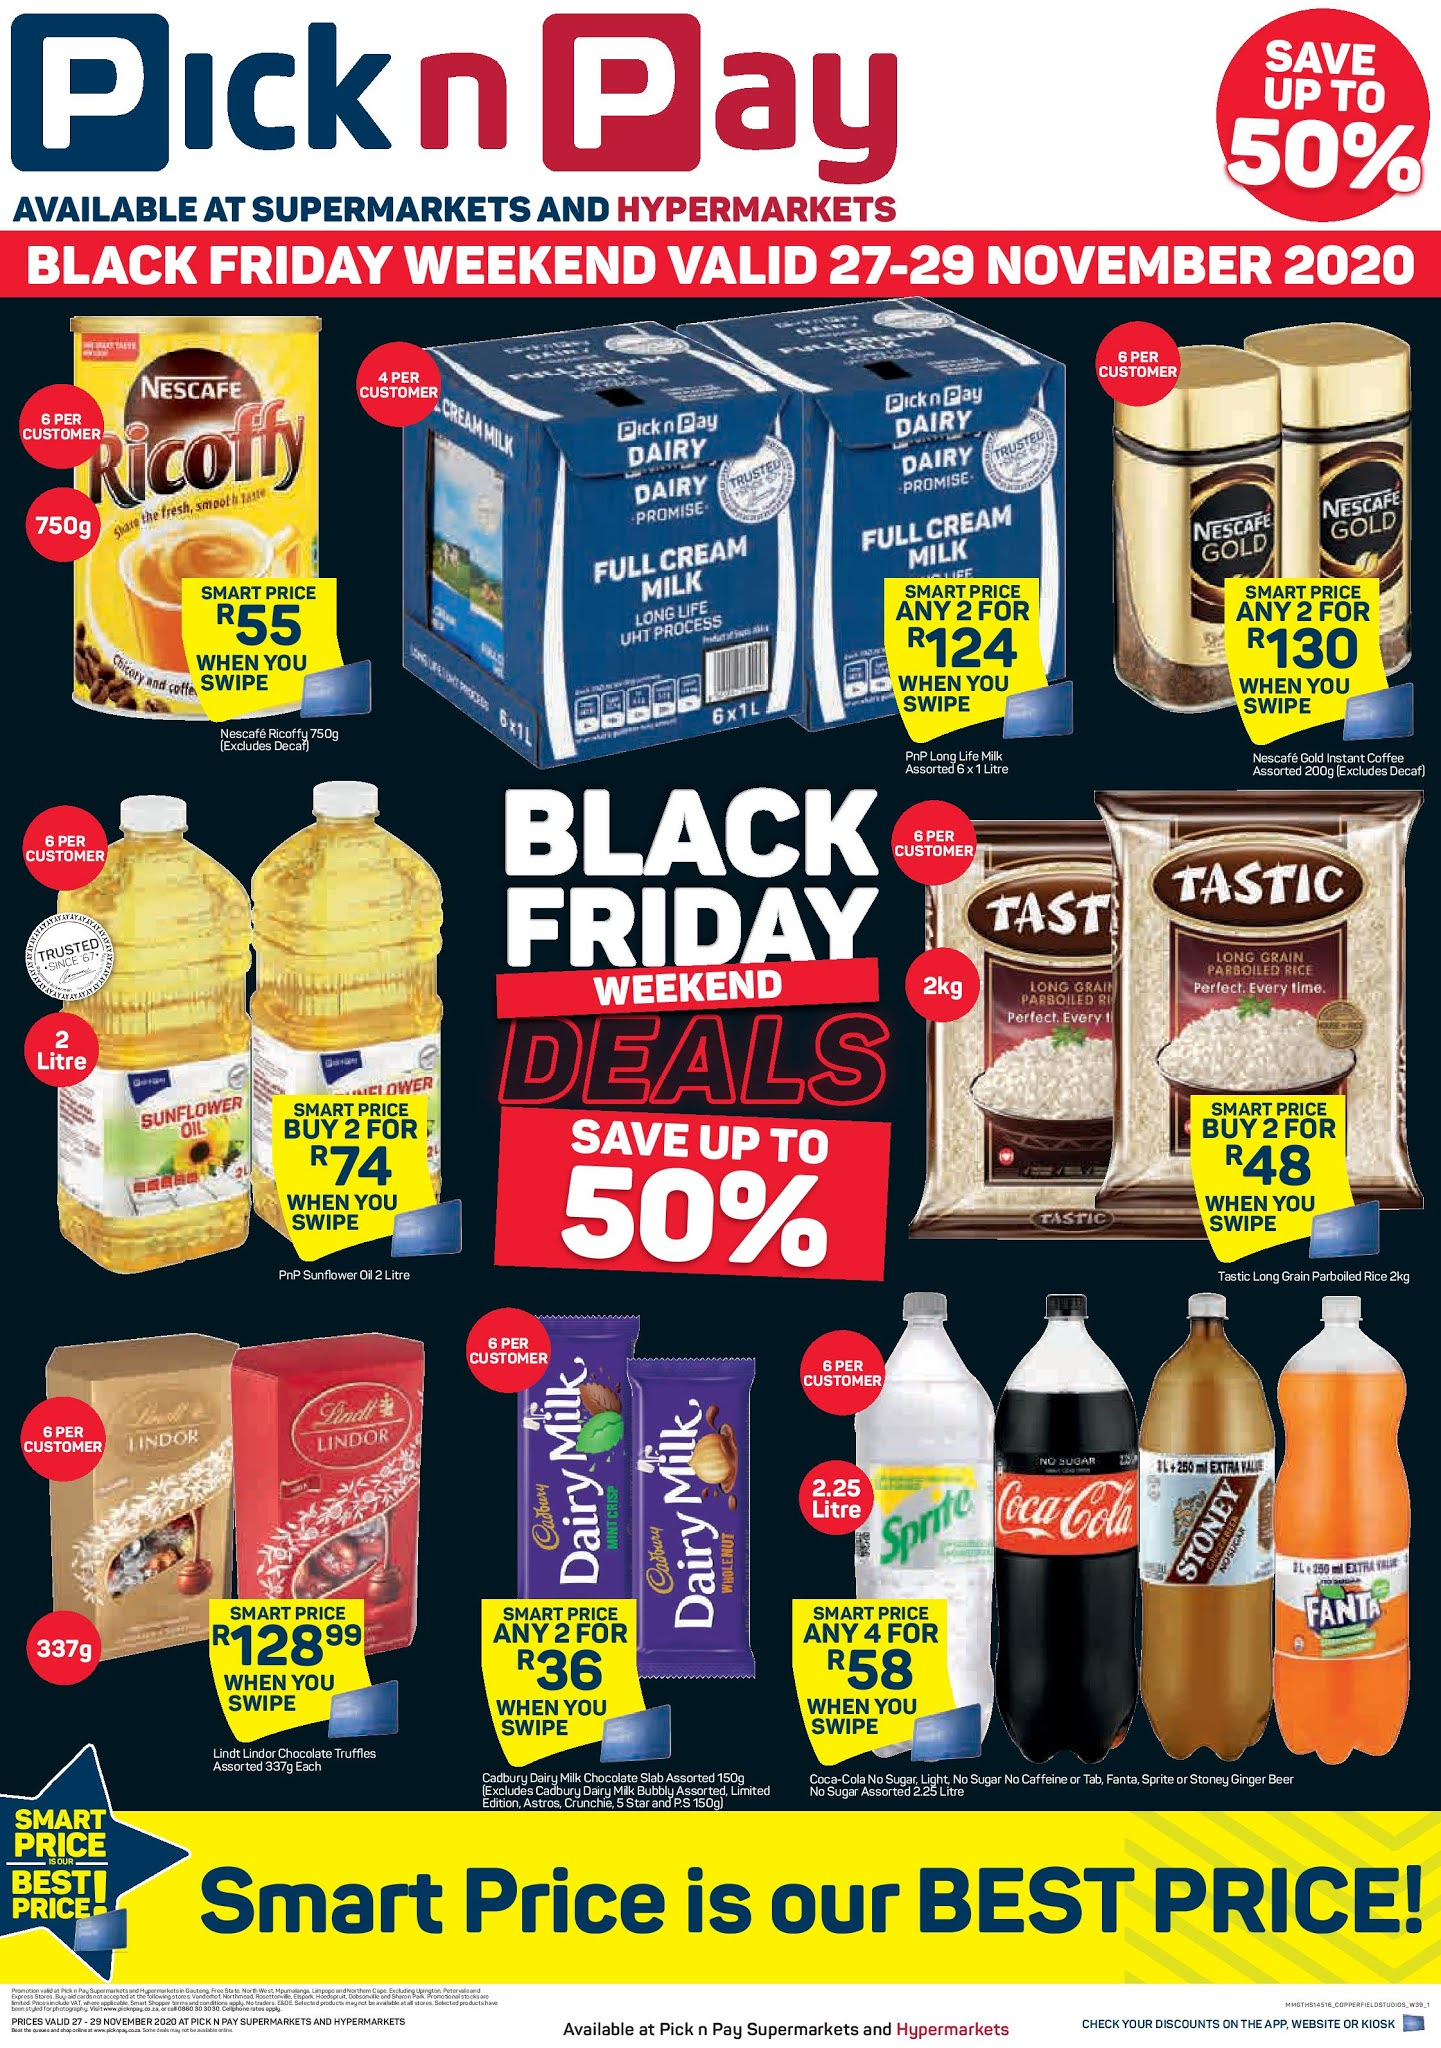 Pick n Pay Black Friday